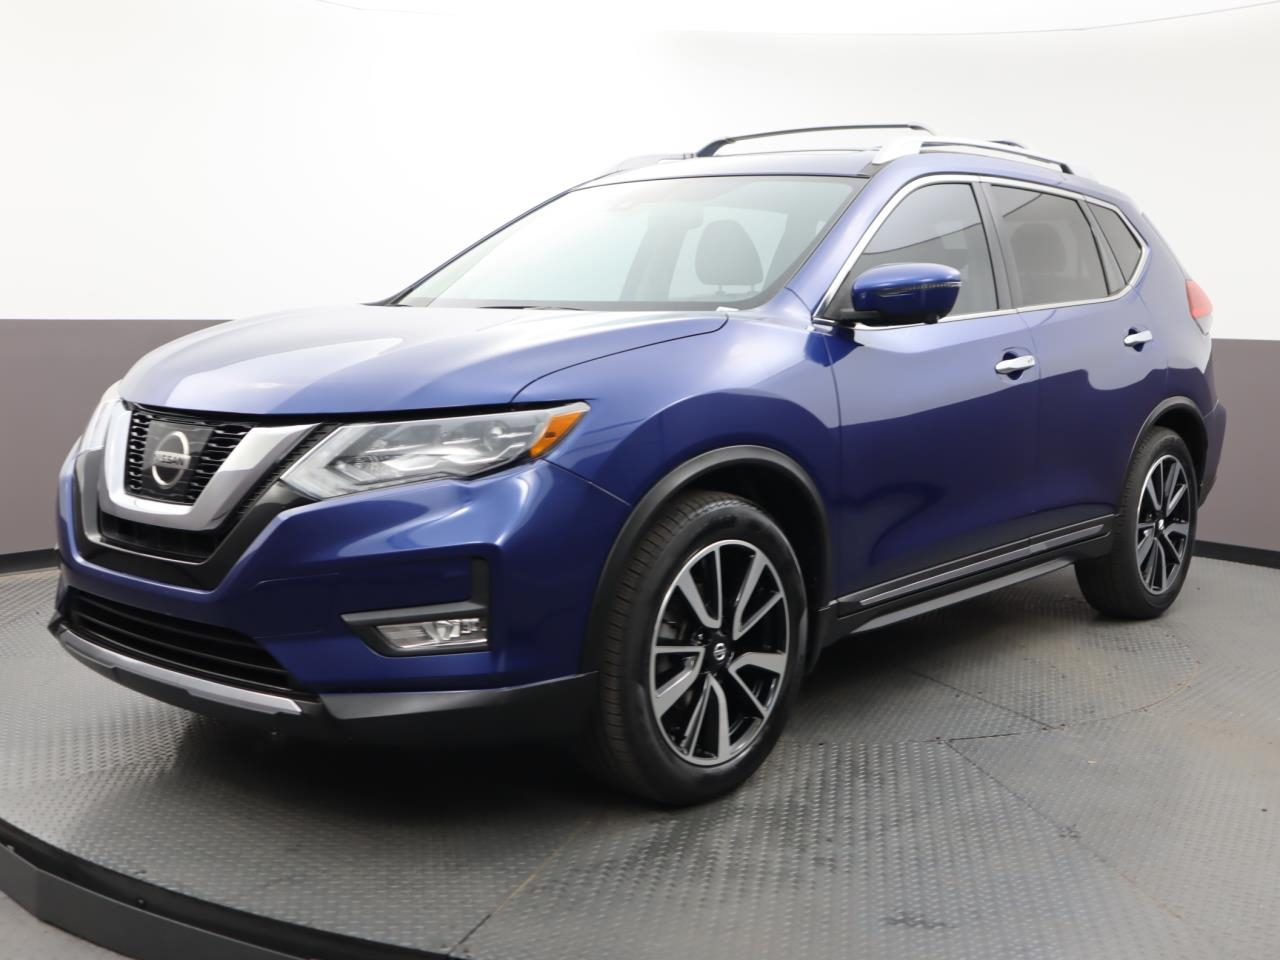 Used NISSAN ROGUE 2017 MARGATE SL